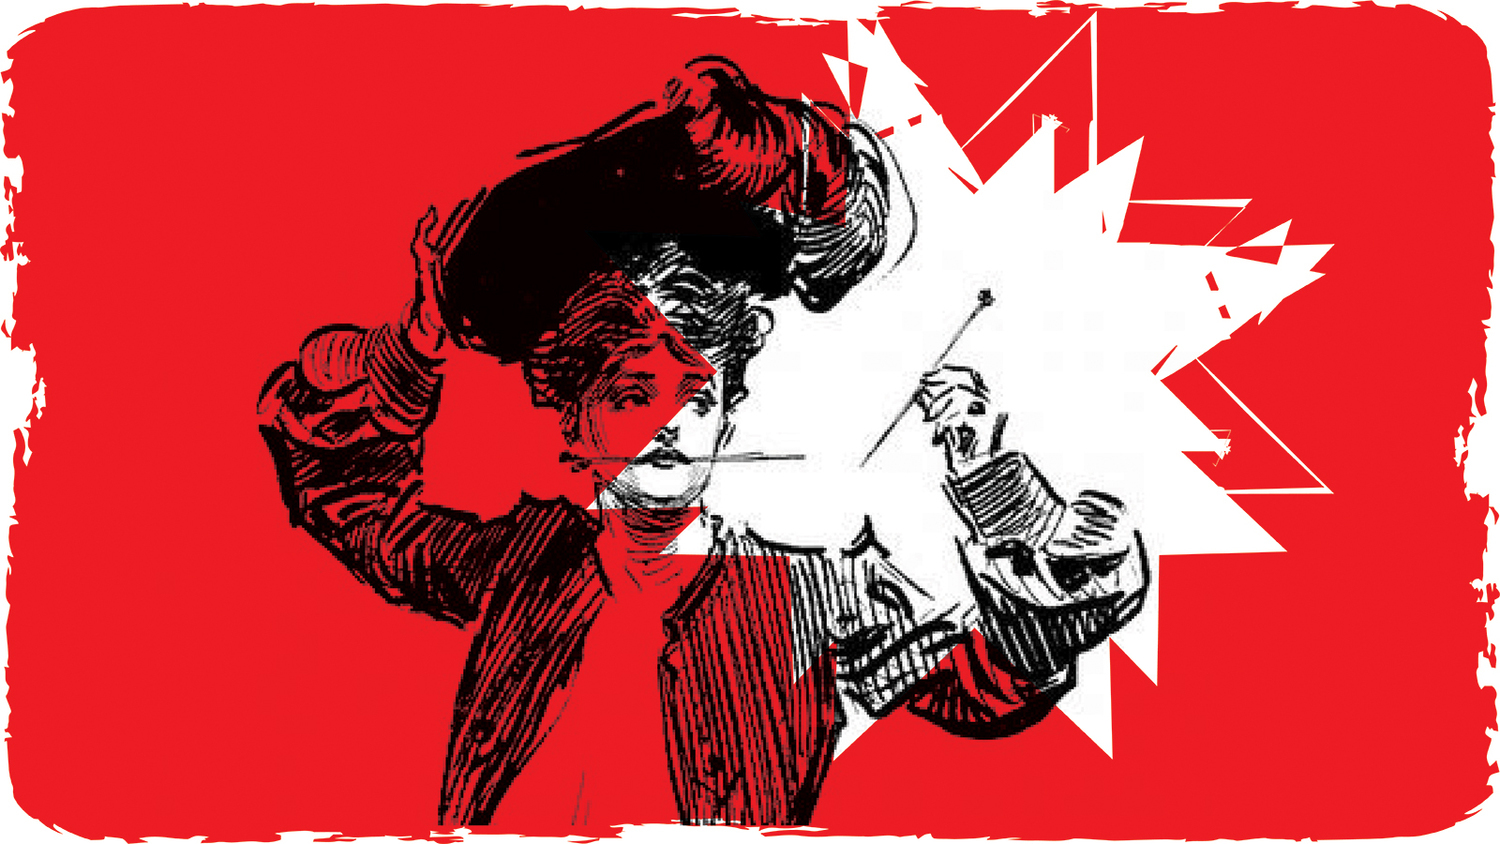 BWW Review: HATPIN PANIC at Capital Fringe Curated Series